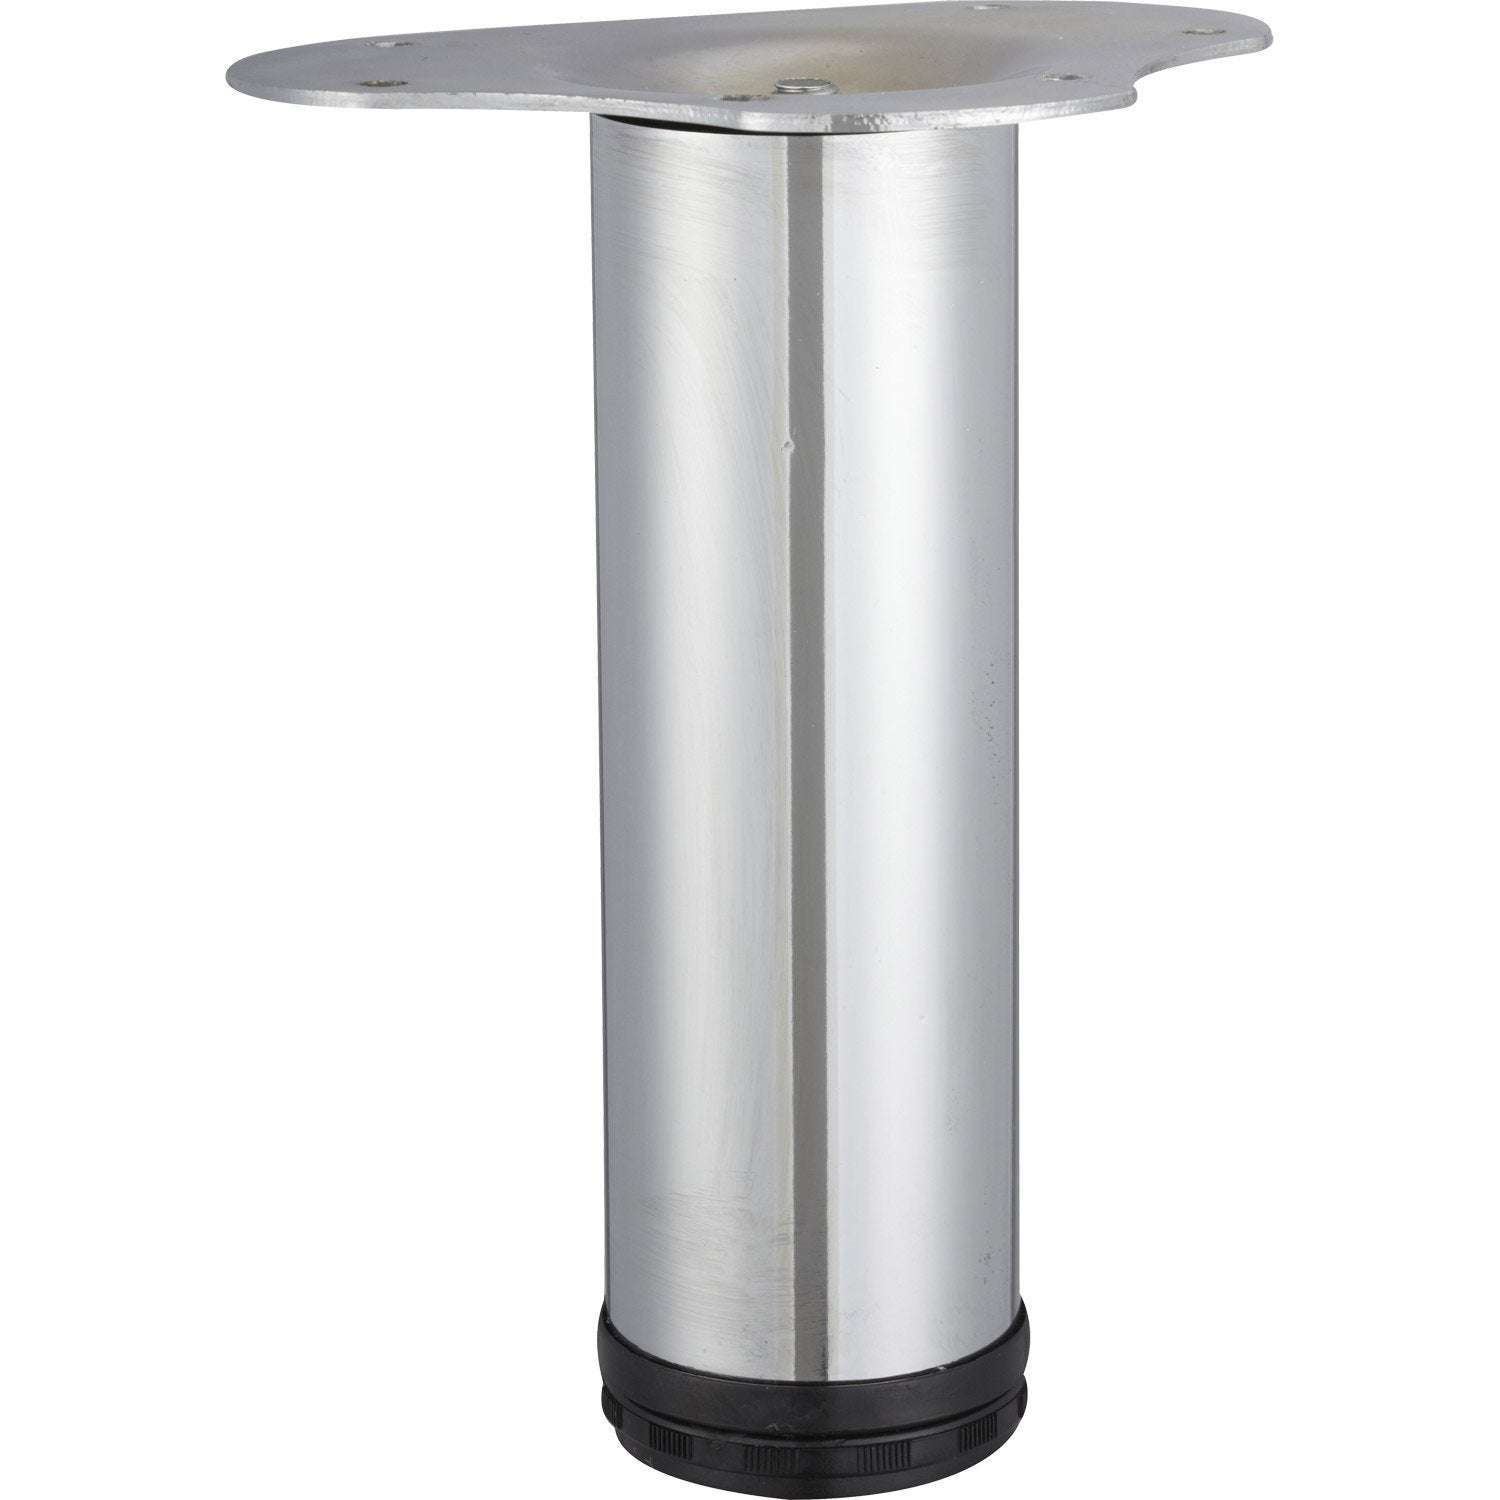 Pied de table basse cylindrique r glable en acier chrom gris 20cmx60mm le - Pied de table basse leroy merlin ...